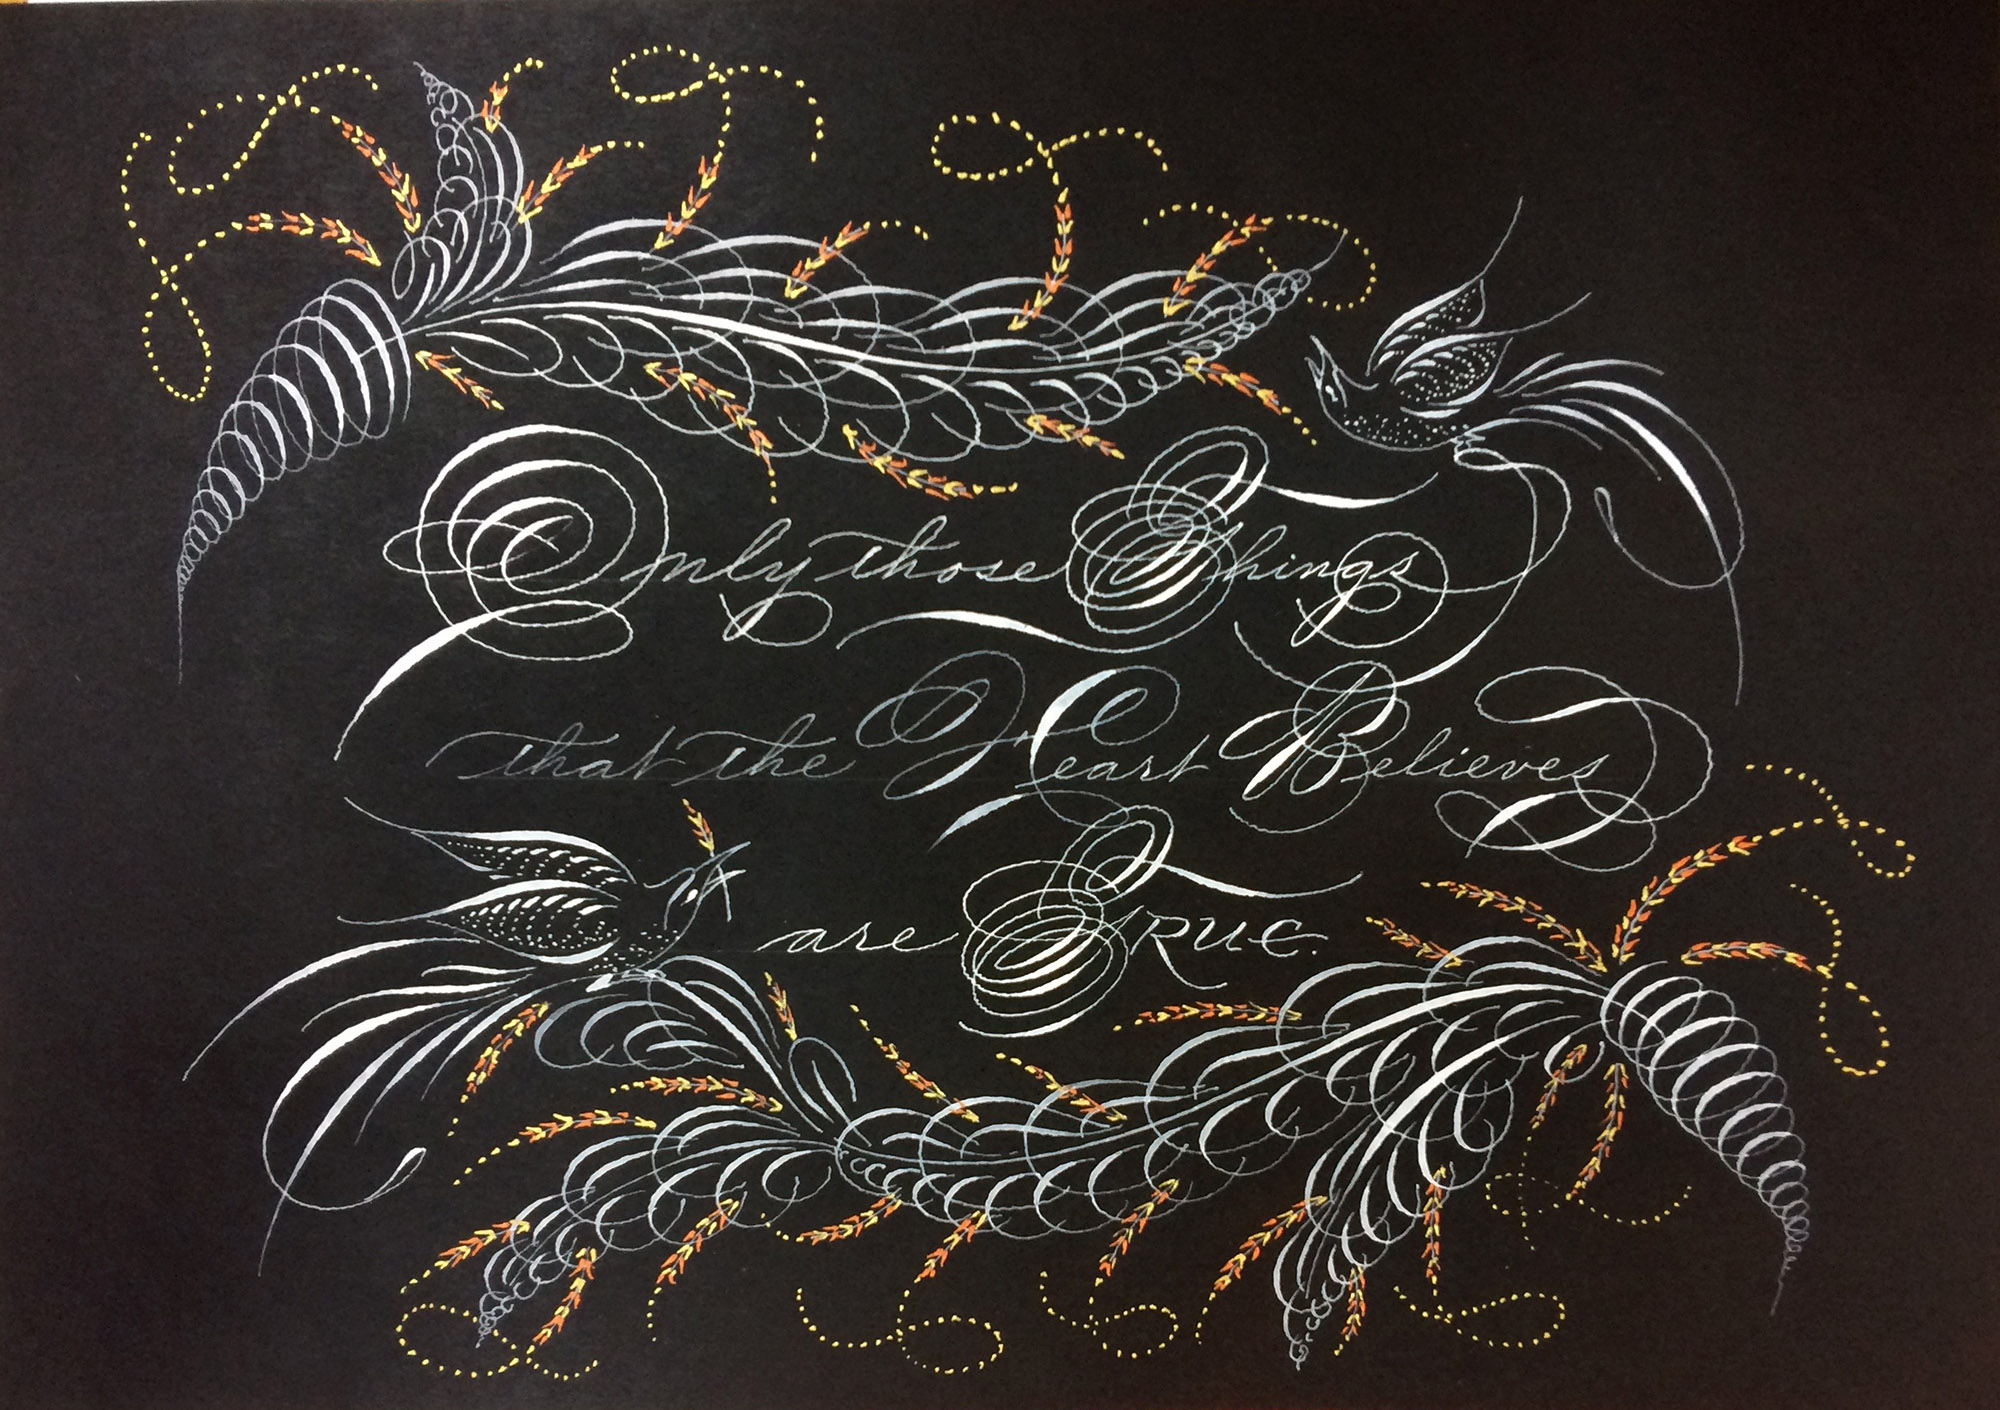 Calligraphy by Michael Sull